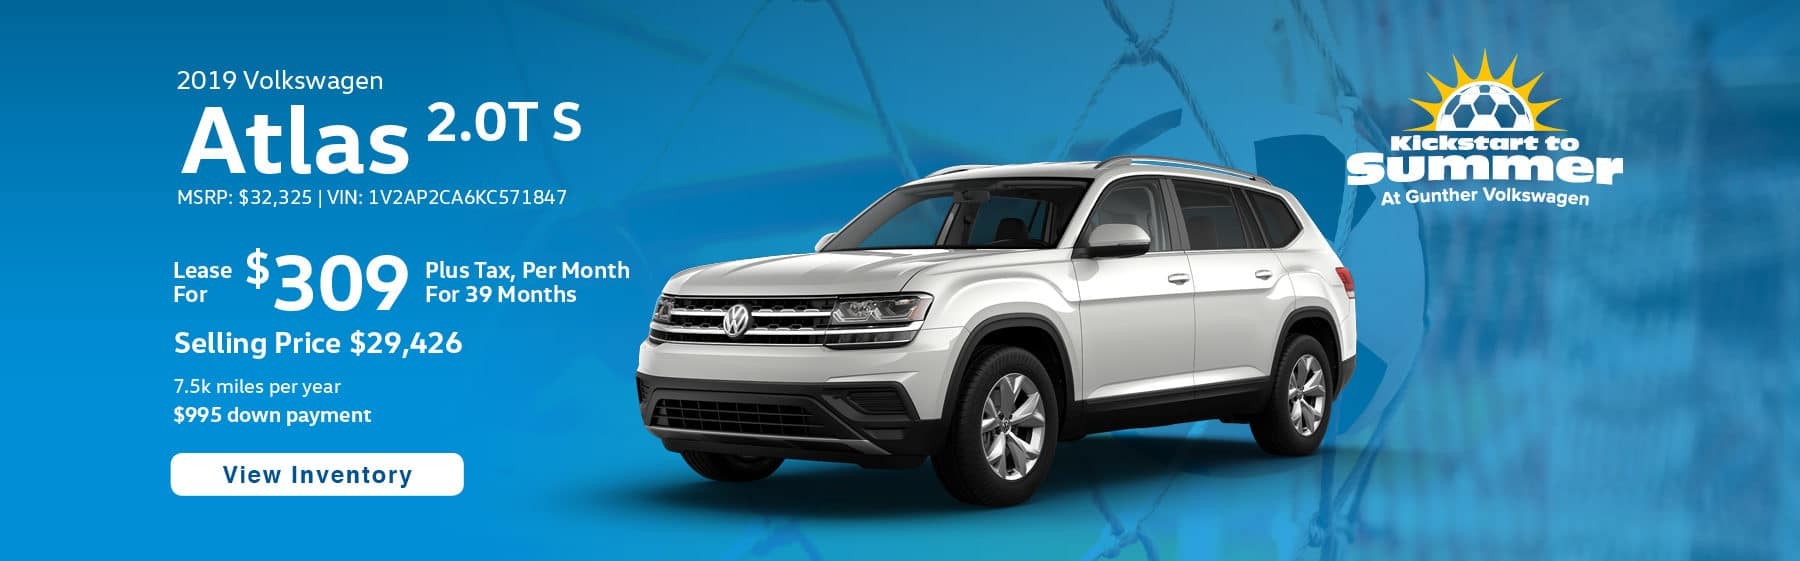 Lease the 2019 Atlas 2.0T S for $309 per month, plus tax for 39 months.